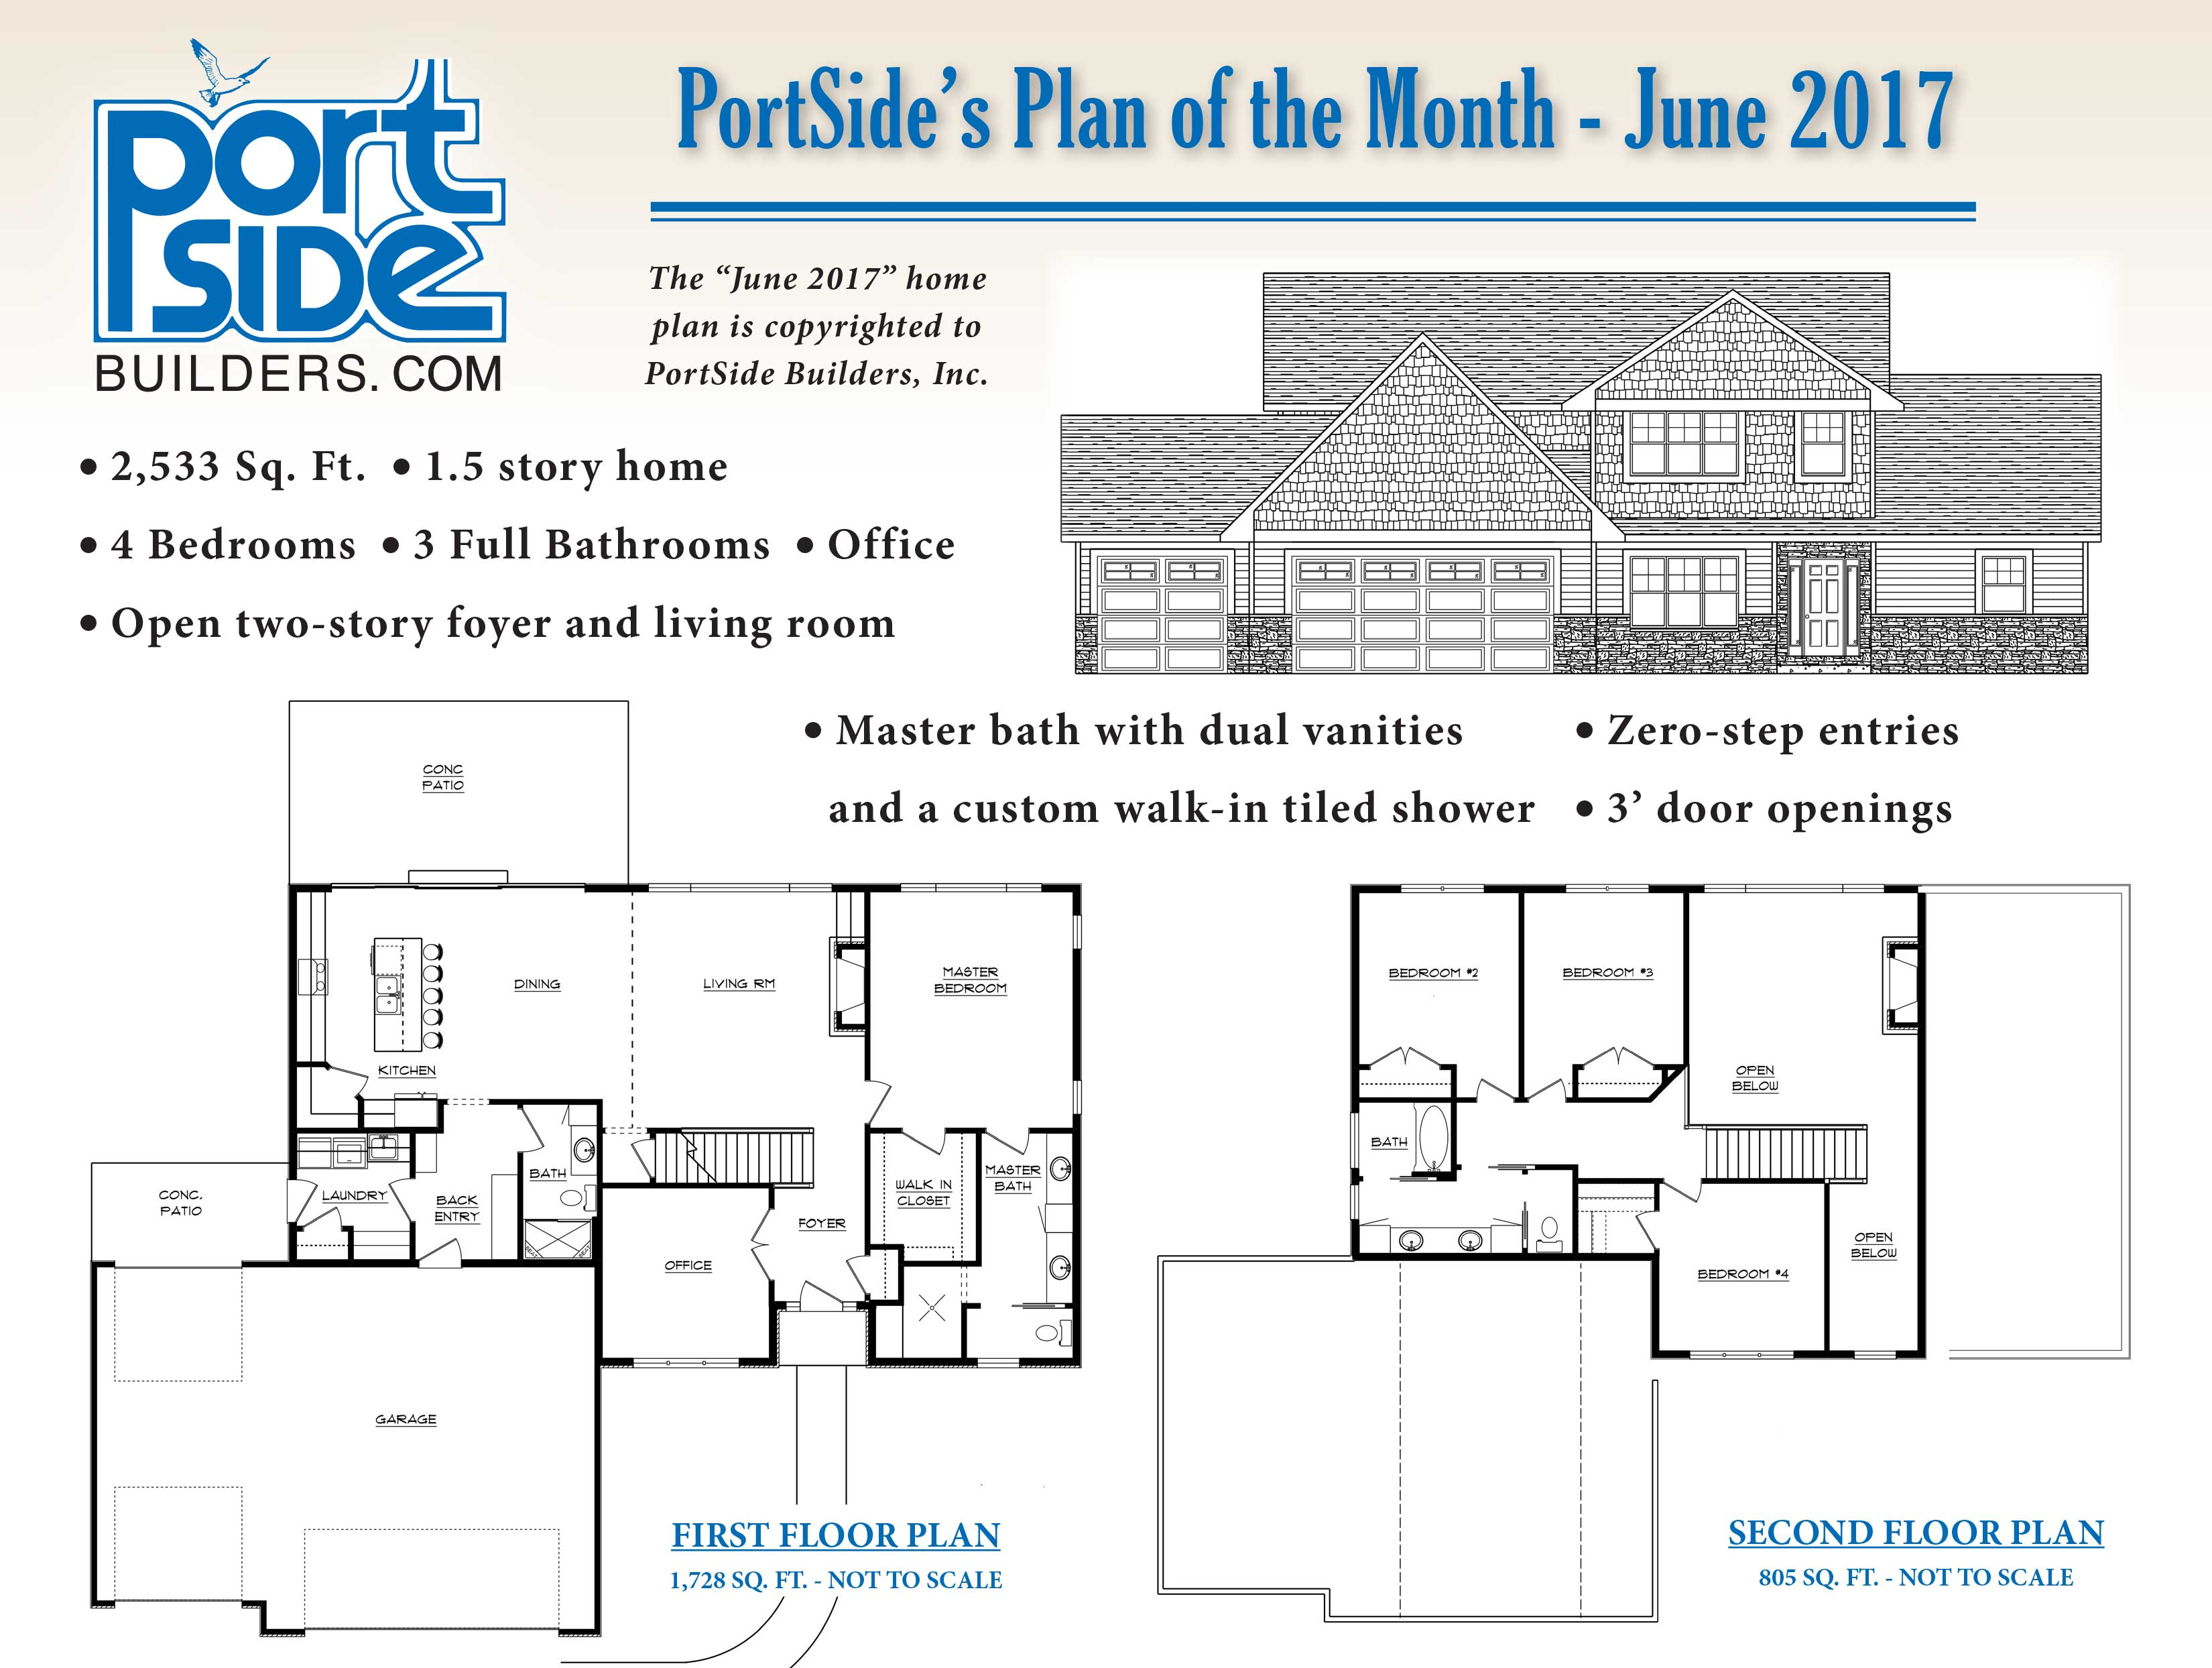 home plan of the month portside builders new home ideas portside builders june 2017 home plan